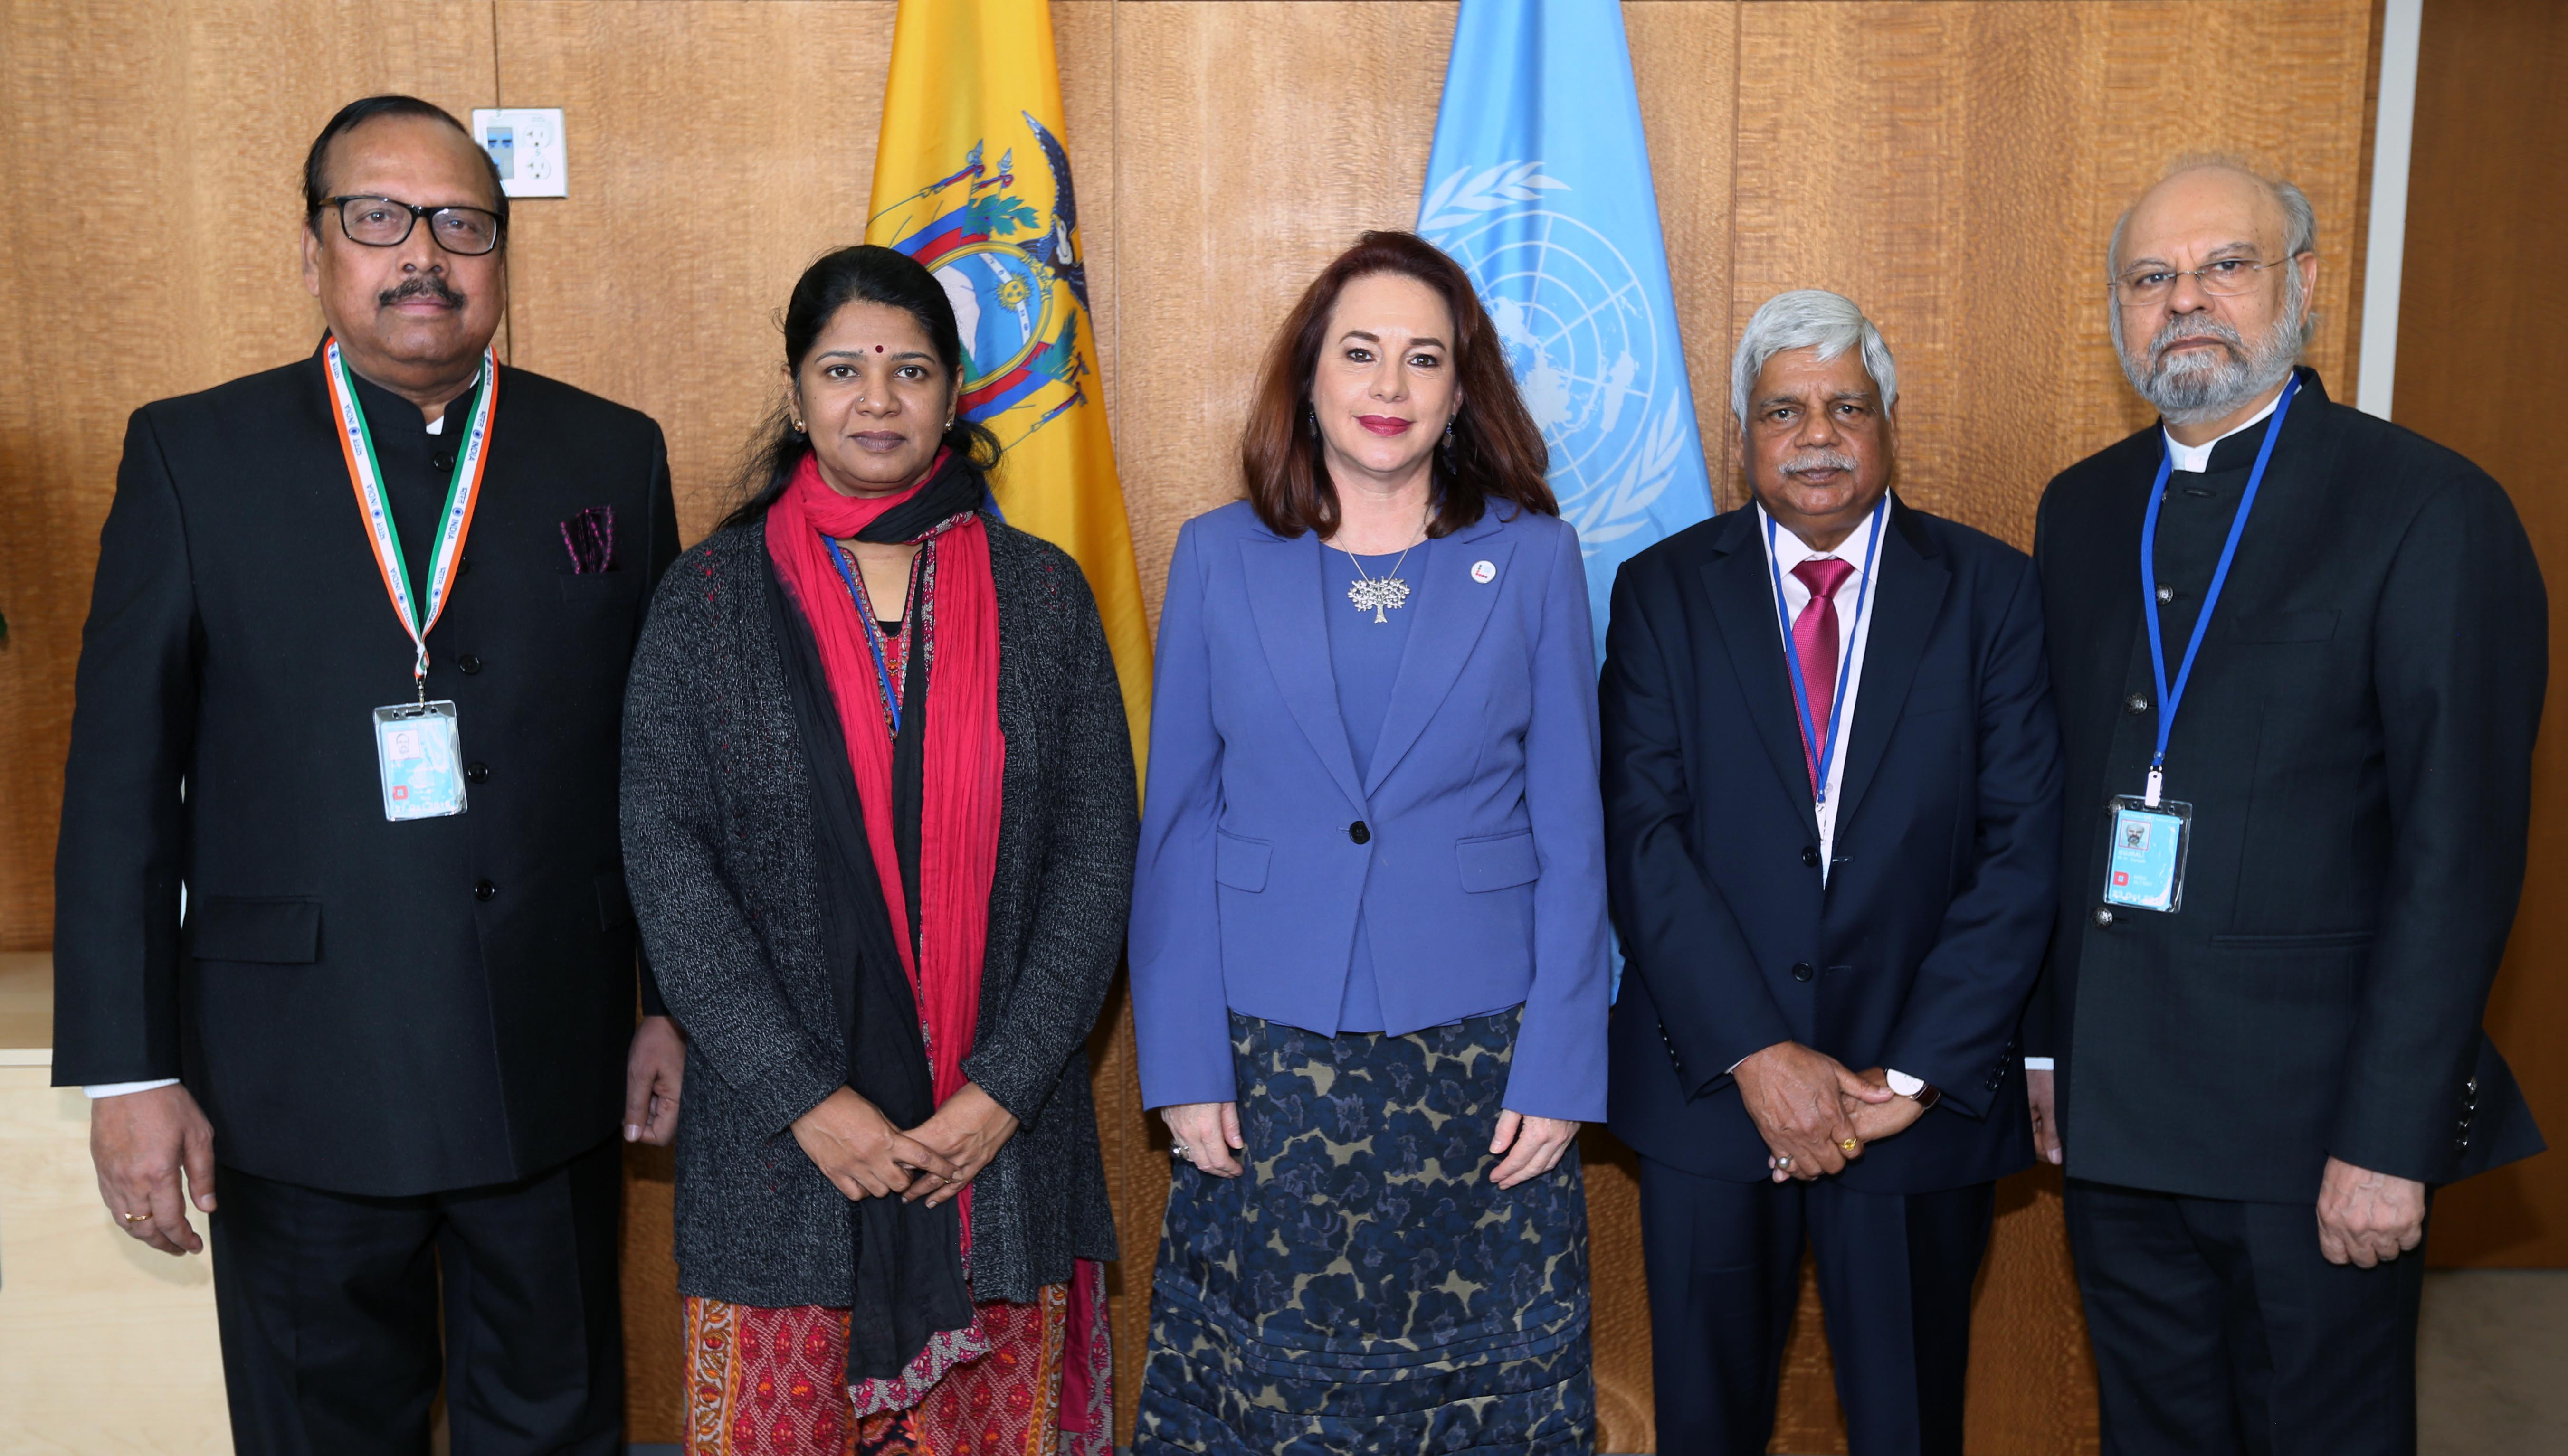 Members of Parliament meet President of the 73rd UN General Assembly Ms. María Fernanda Espinosa Garcés